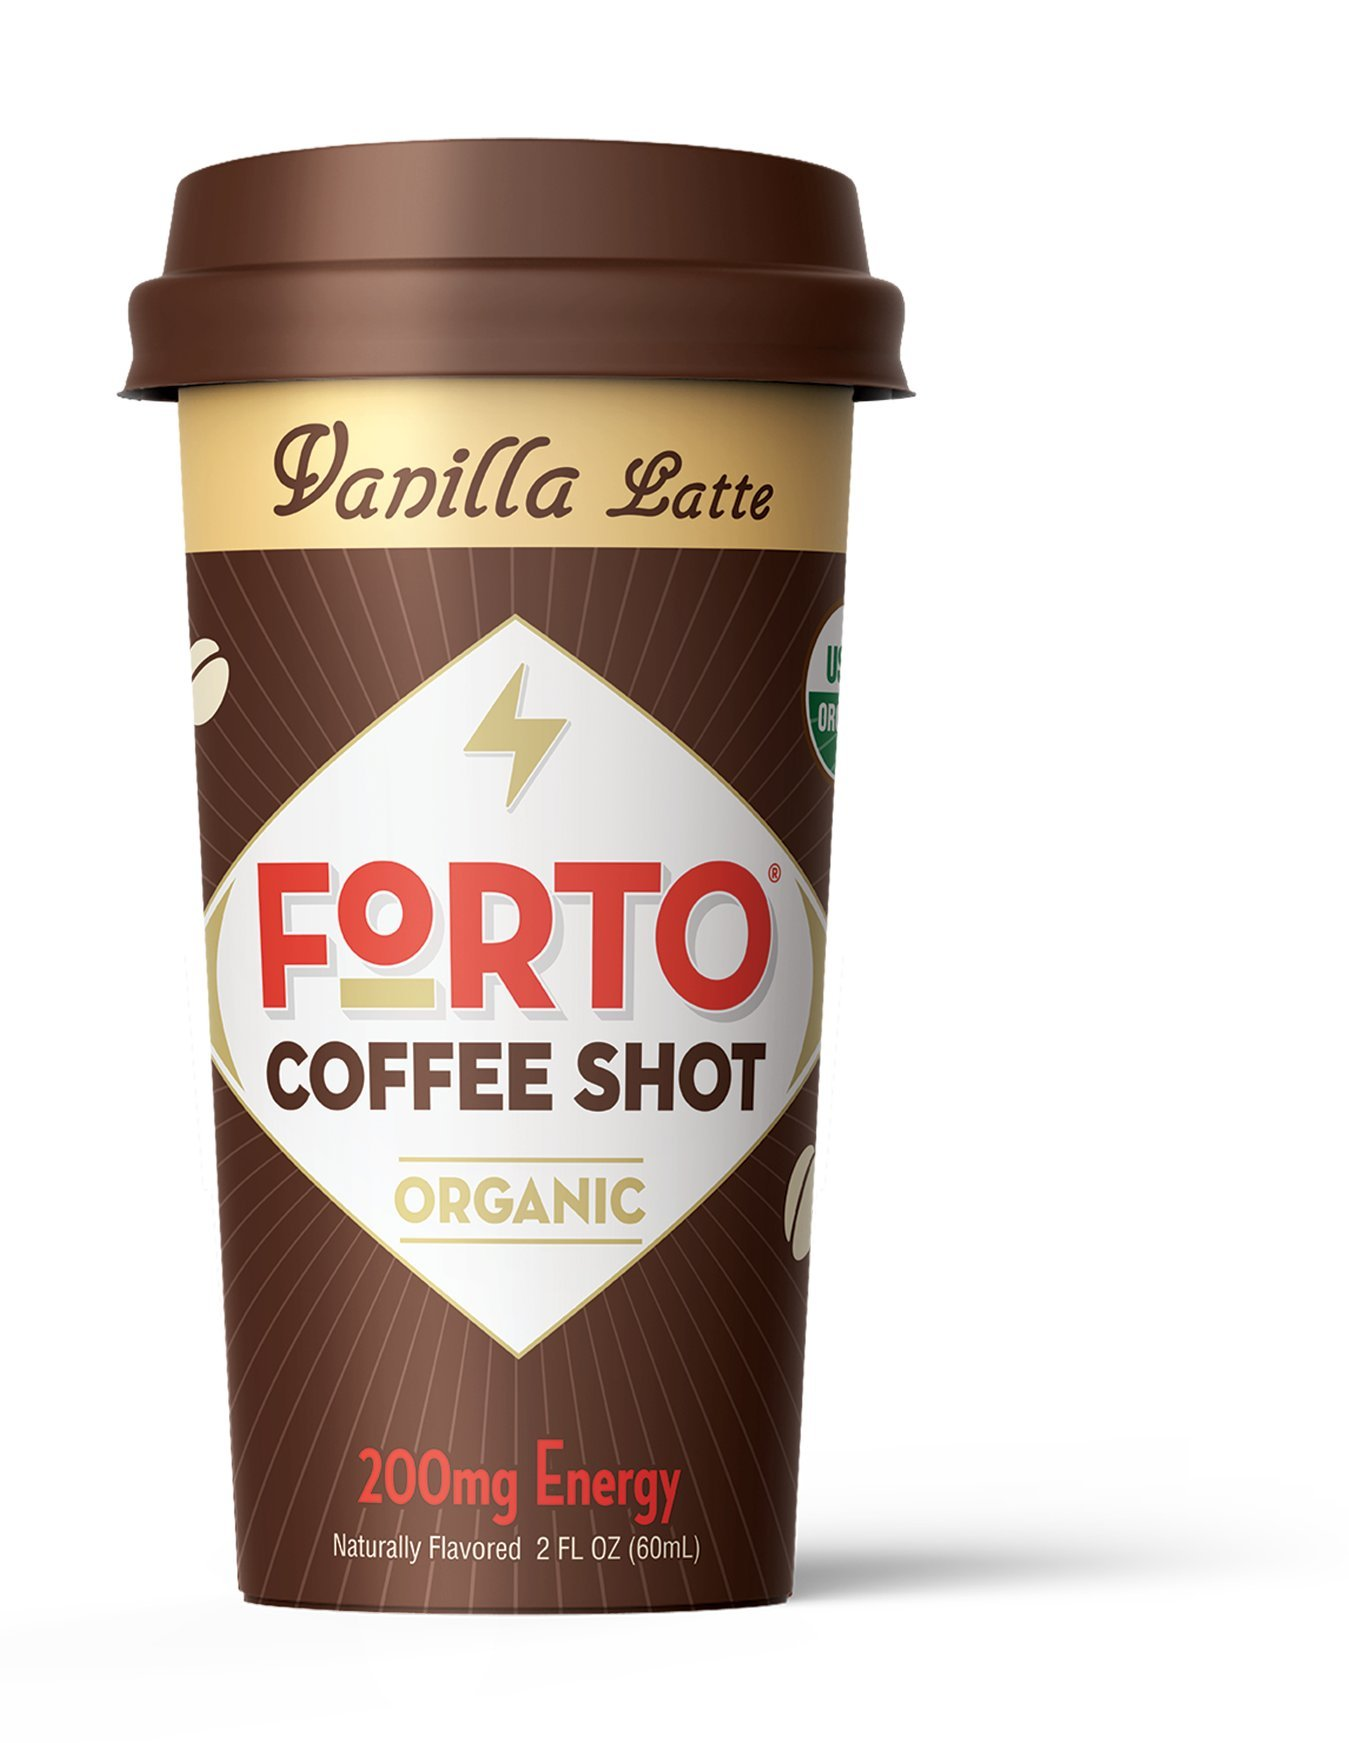 FORTO Coffee Shots - 200mg Caffeine, Vanilla Latte, High Caffeine Cold Brew Coffee, Bottled Fast Coffee Energy Boost, 12 pack